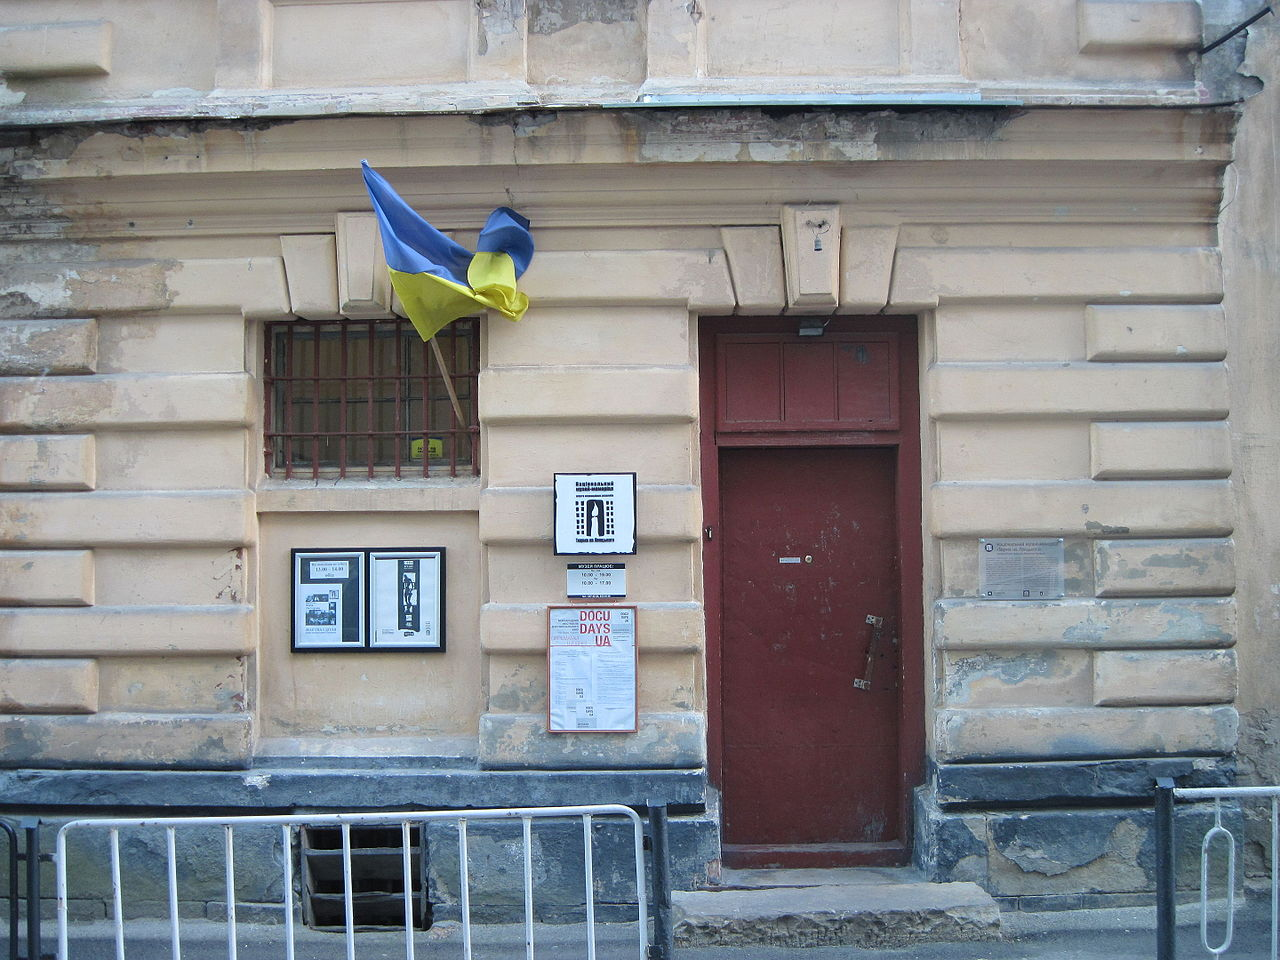 https://en.wikipedia.org/wiki/Prison_on_%C5%81%C4%85cki_Street#/media/File:Prizon_on_Lonts%27koho,_Lviv.jpg